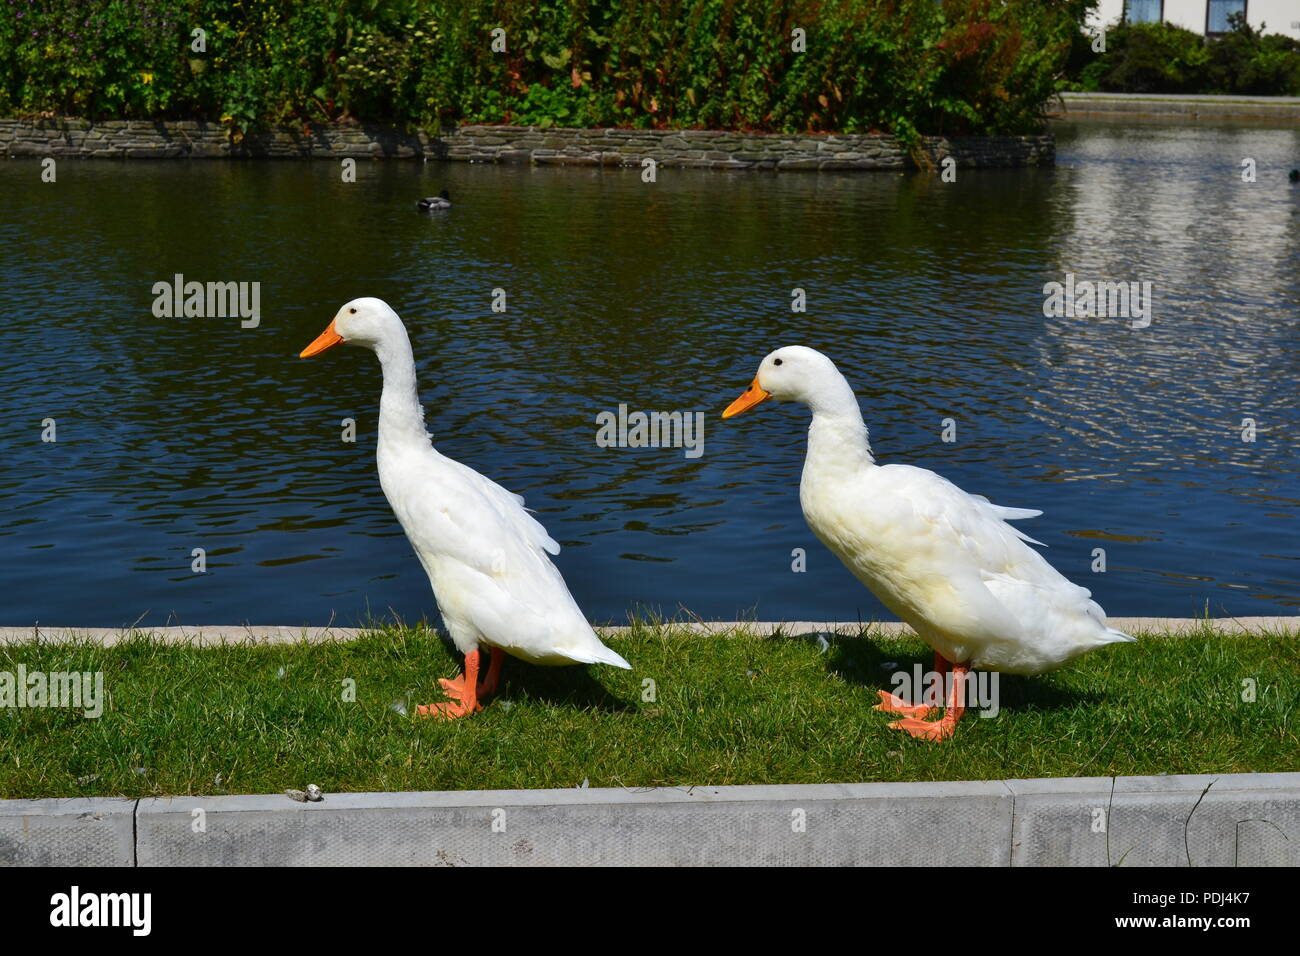 Two Ducks Beside a Lake - Stock Image